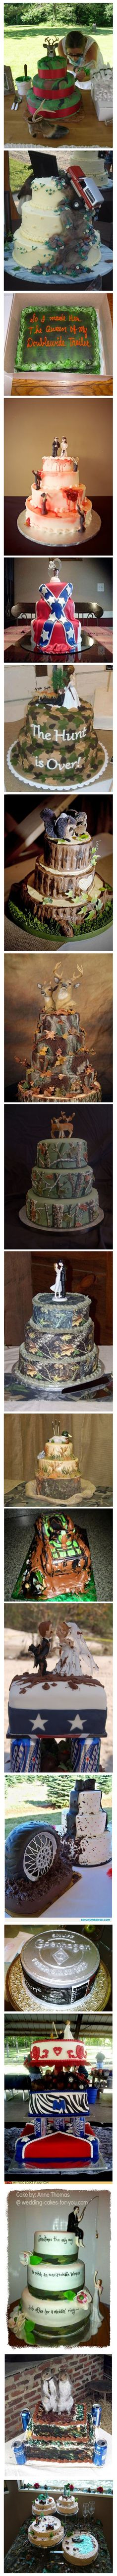 Redneck Wedding Cakes | Mommy Has A Potty MouthMommy Has A Potty Mouth